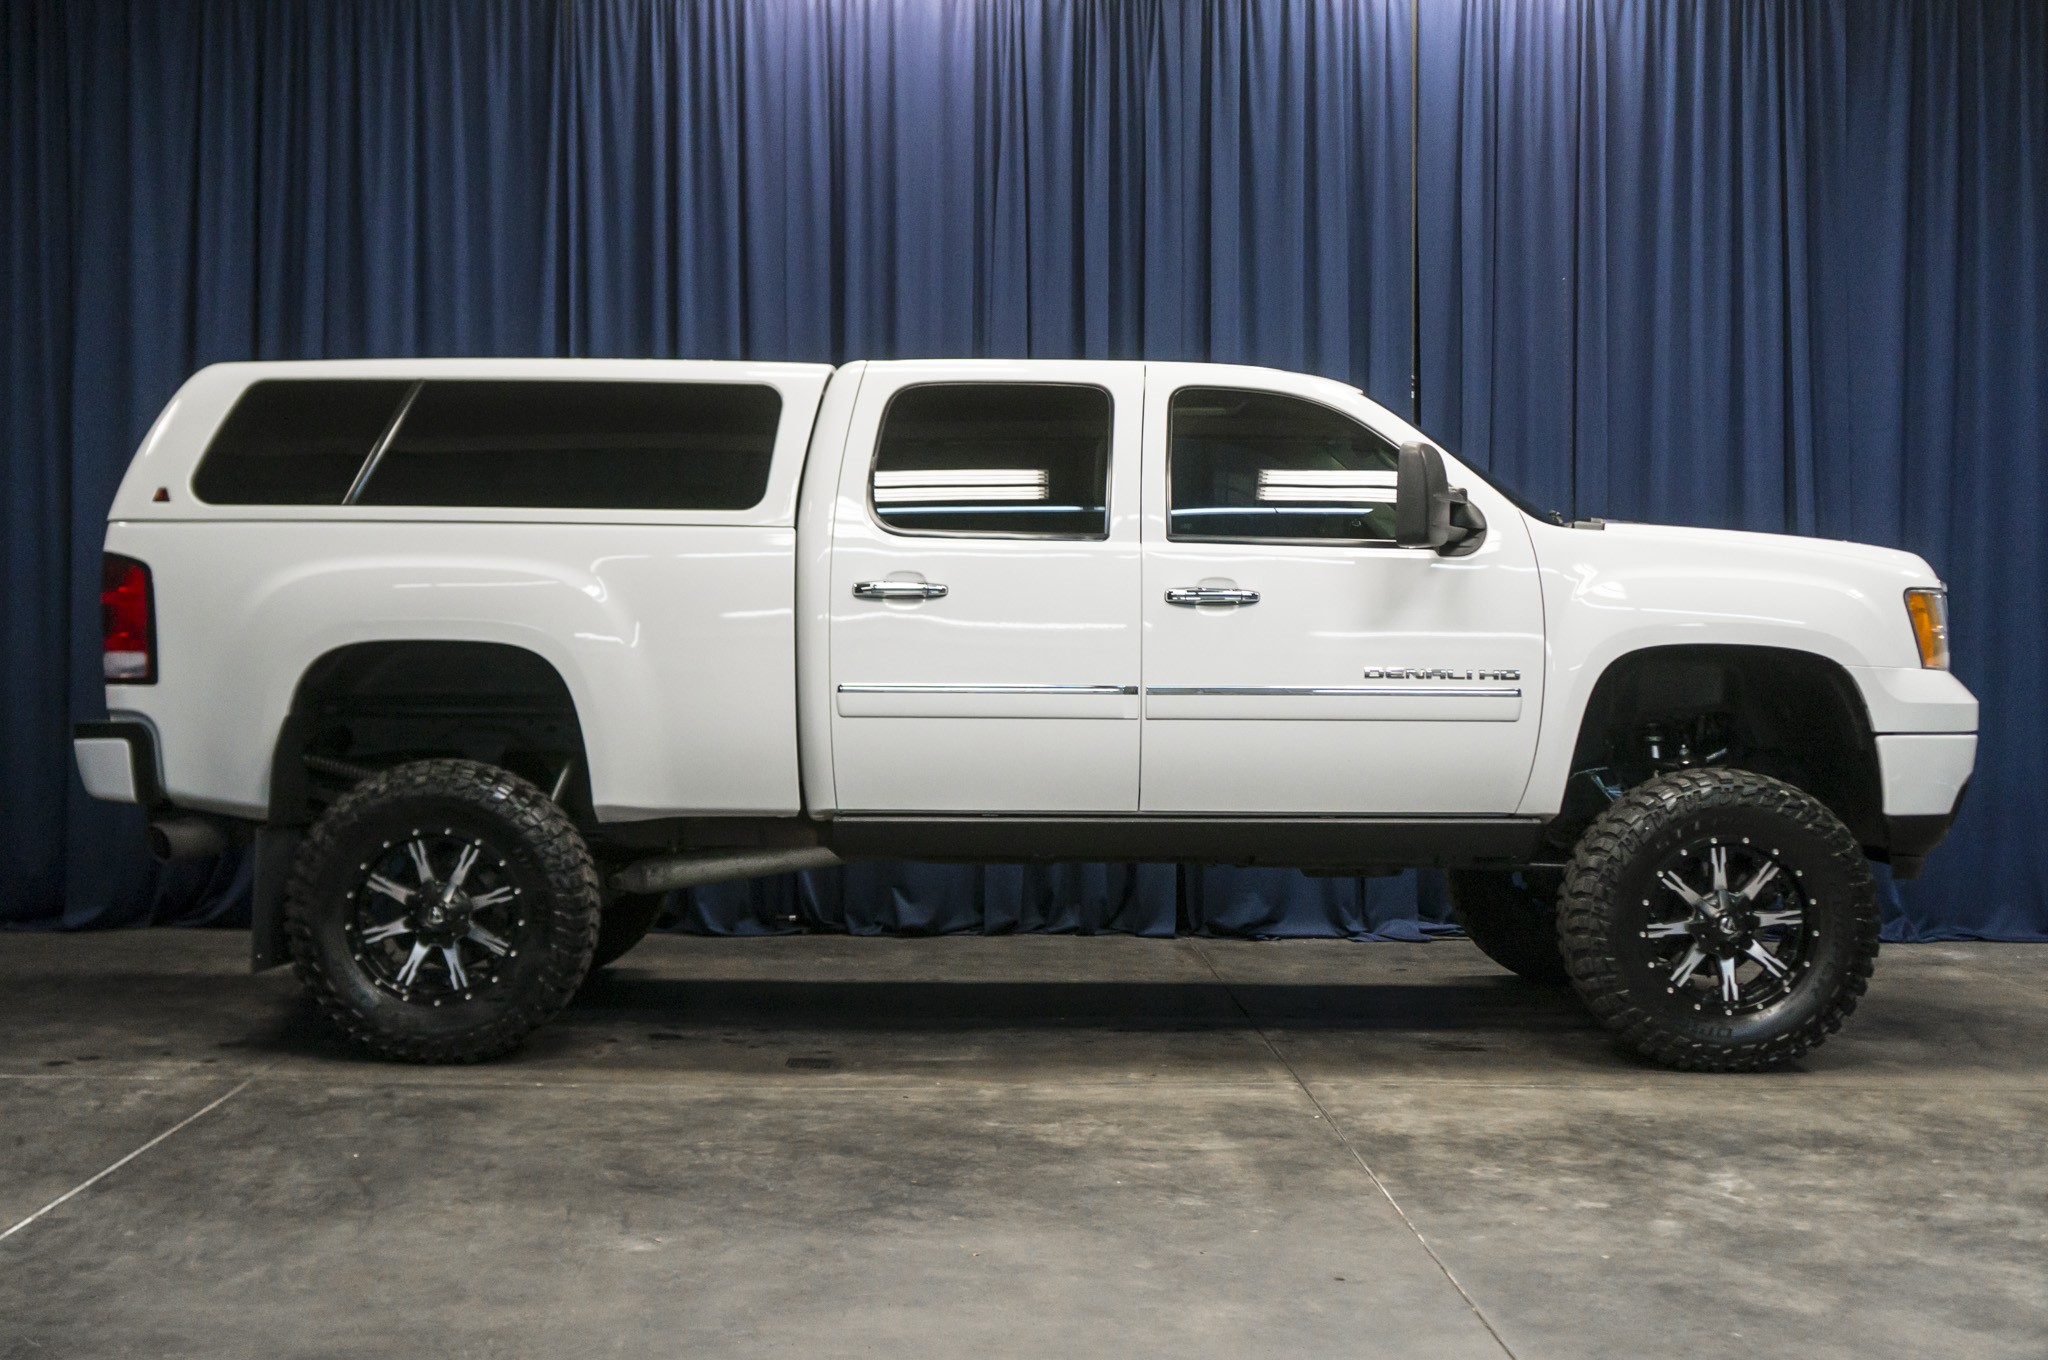 used lifted 2011 gmc sierra 2500 denali hd 4x4 diesel truck for sale 38082. Black Bedroom Furniture Sets. Home Design Ideas